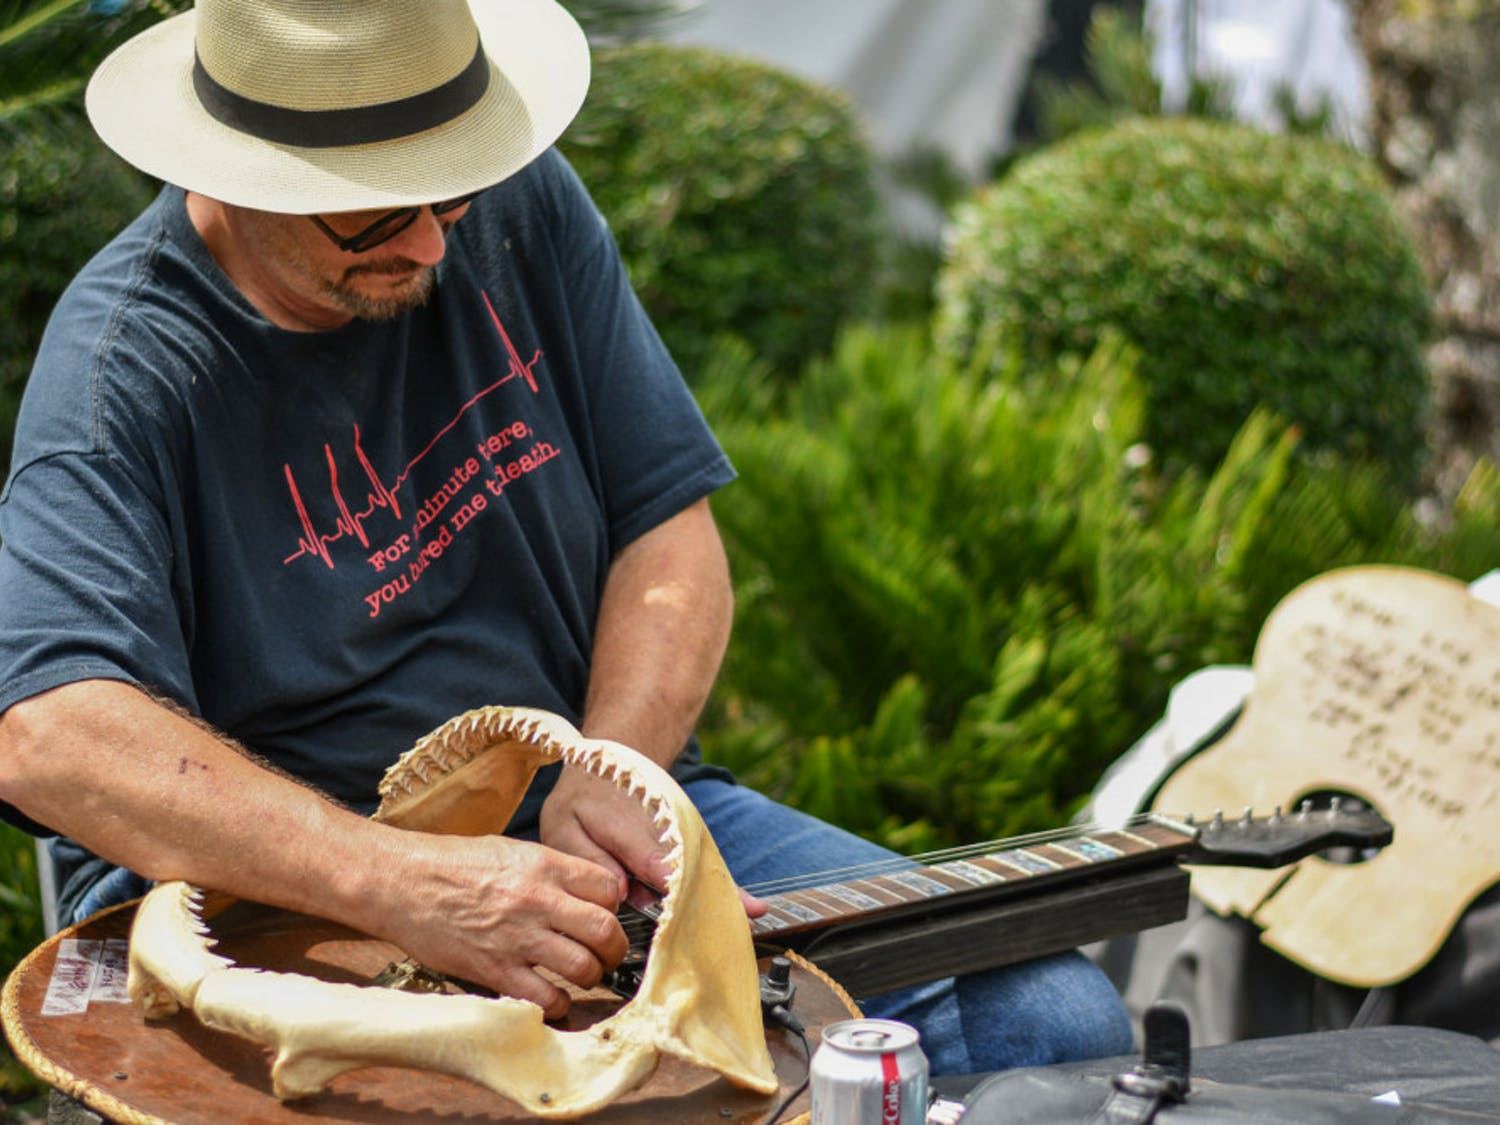 James Floyd, a guitar luthier from Pensacola, Florida, plays a guitar Sunday that he handcrafted from the jaws of a nine-foot shark. Floyd exhibited his collection of unique handmade guitars at the 50th Annual Spring Arts Festival put on by Santa Fe College. The two-day festival had live music, food, paintings, sculptures and many other forms of art.